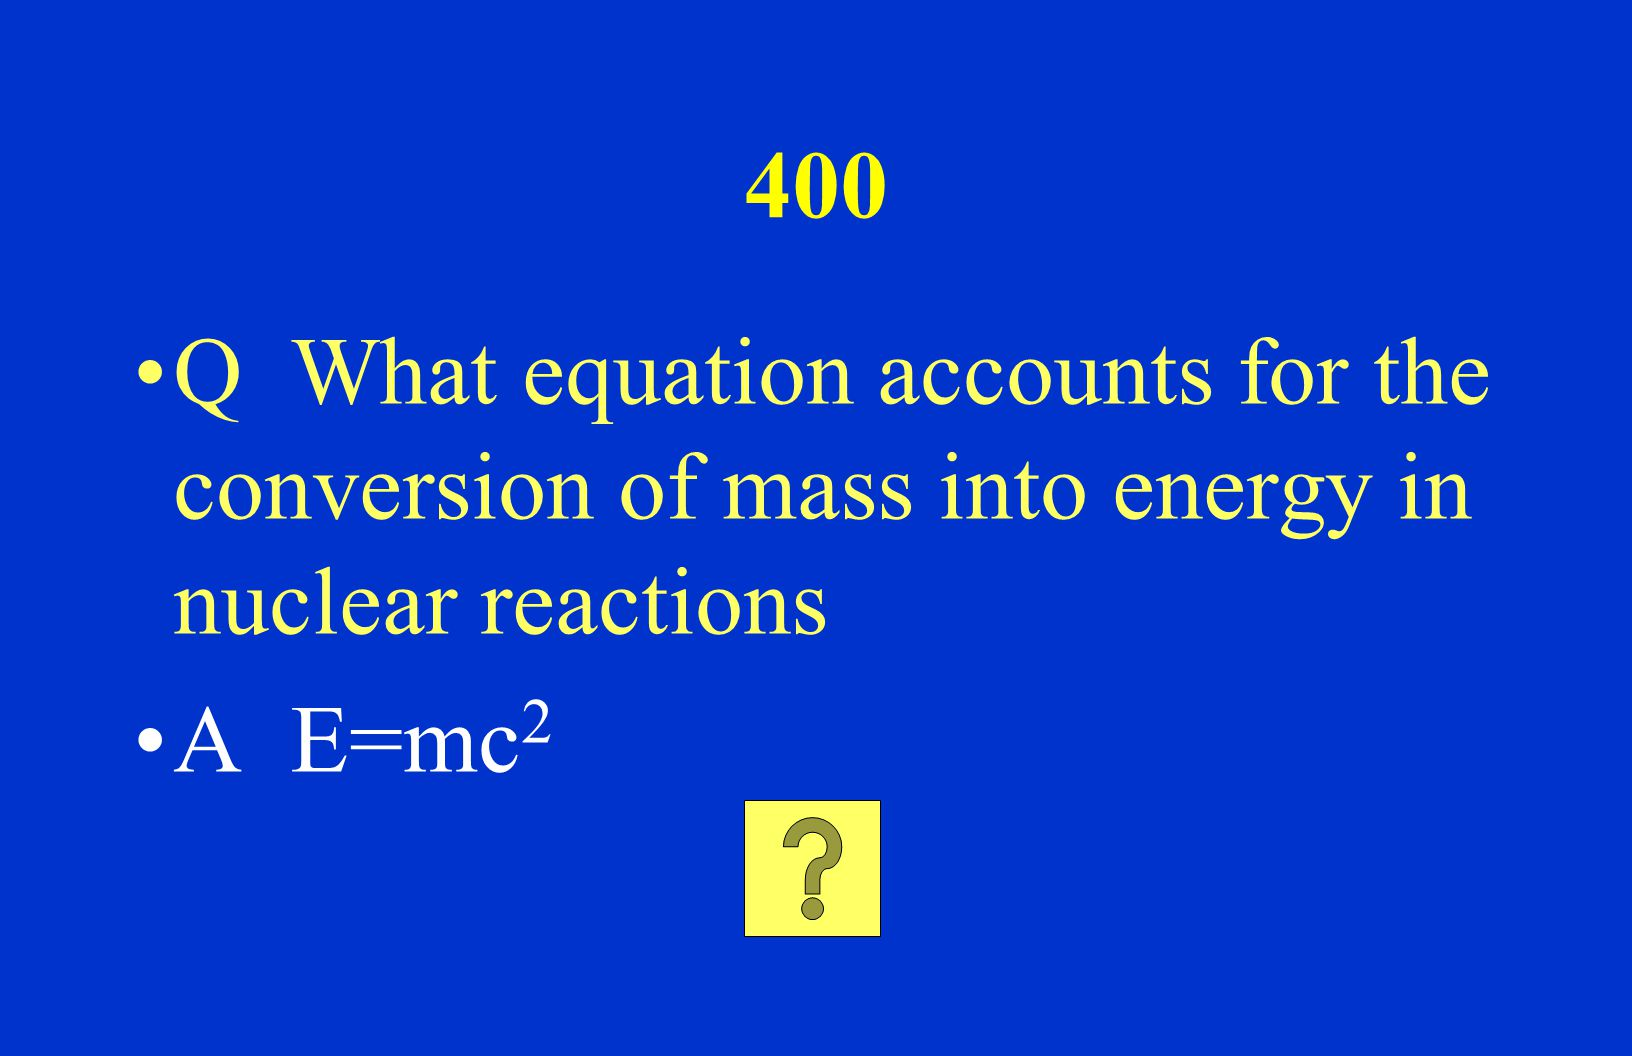 200 Q Changes in the number of these particles result in ions? A electrons